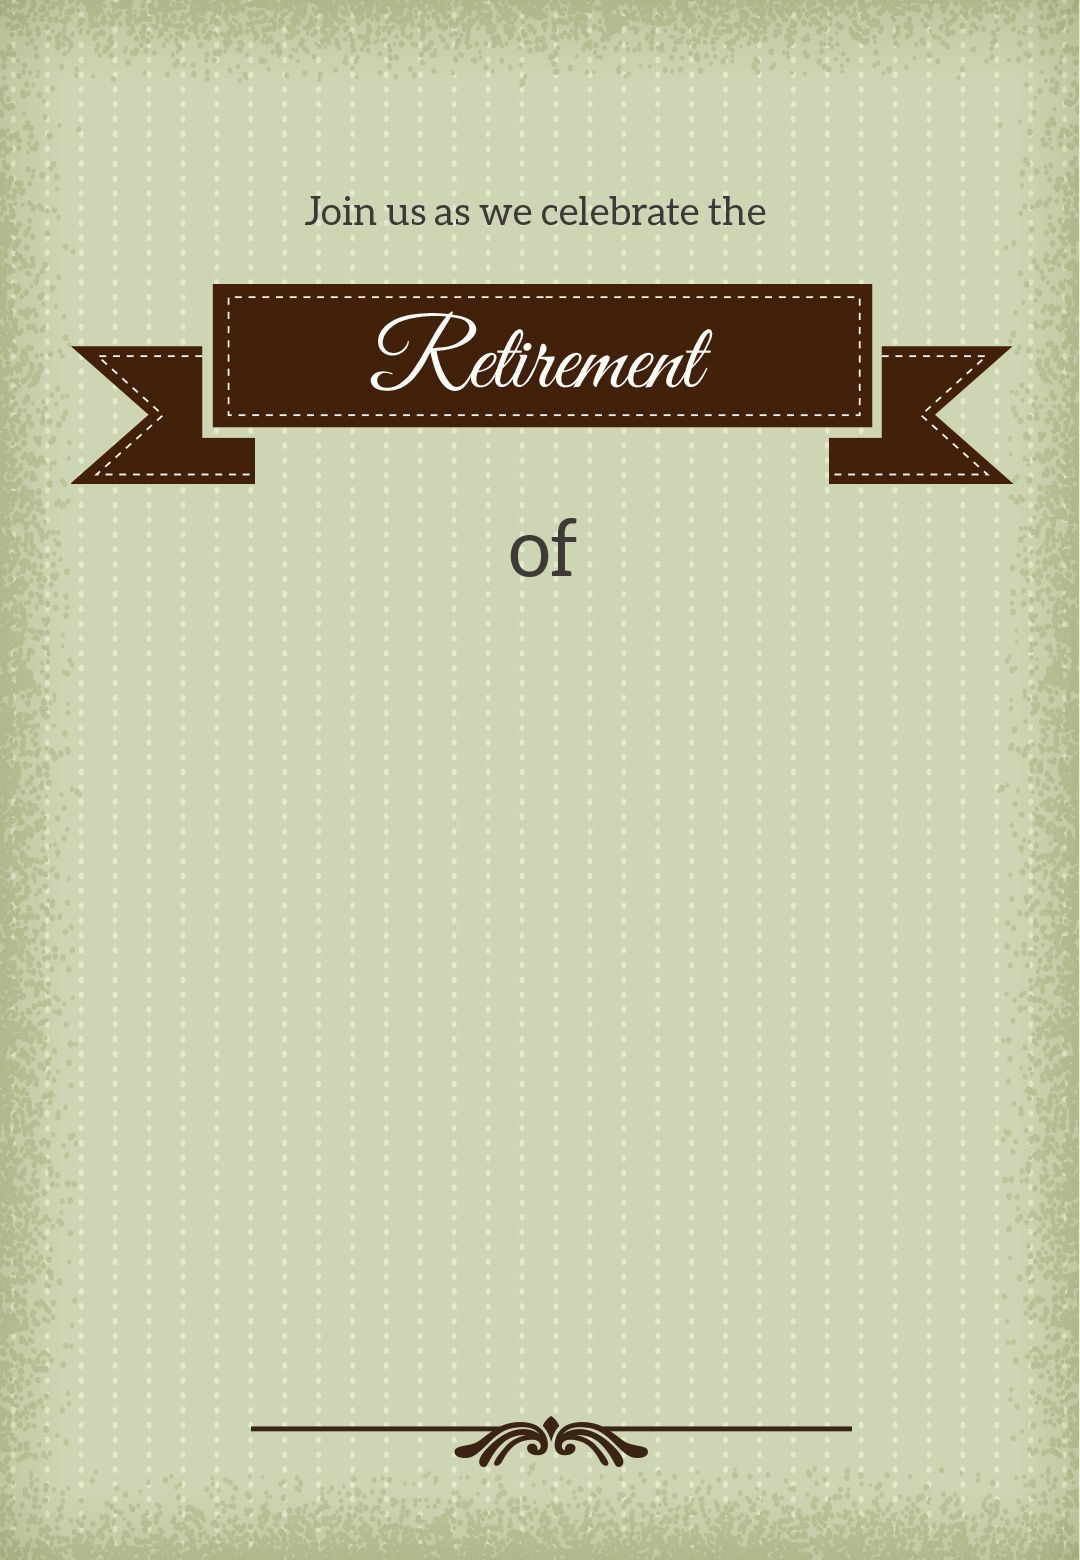 001 Stirring Retirement Invitation Template Free Idea  Party Word DownloadFull